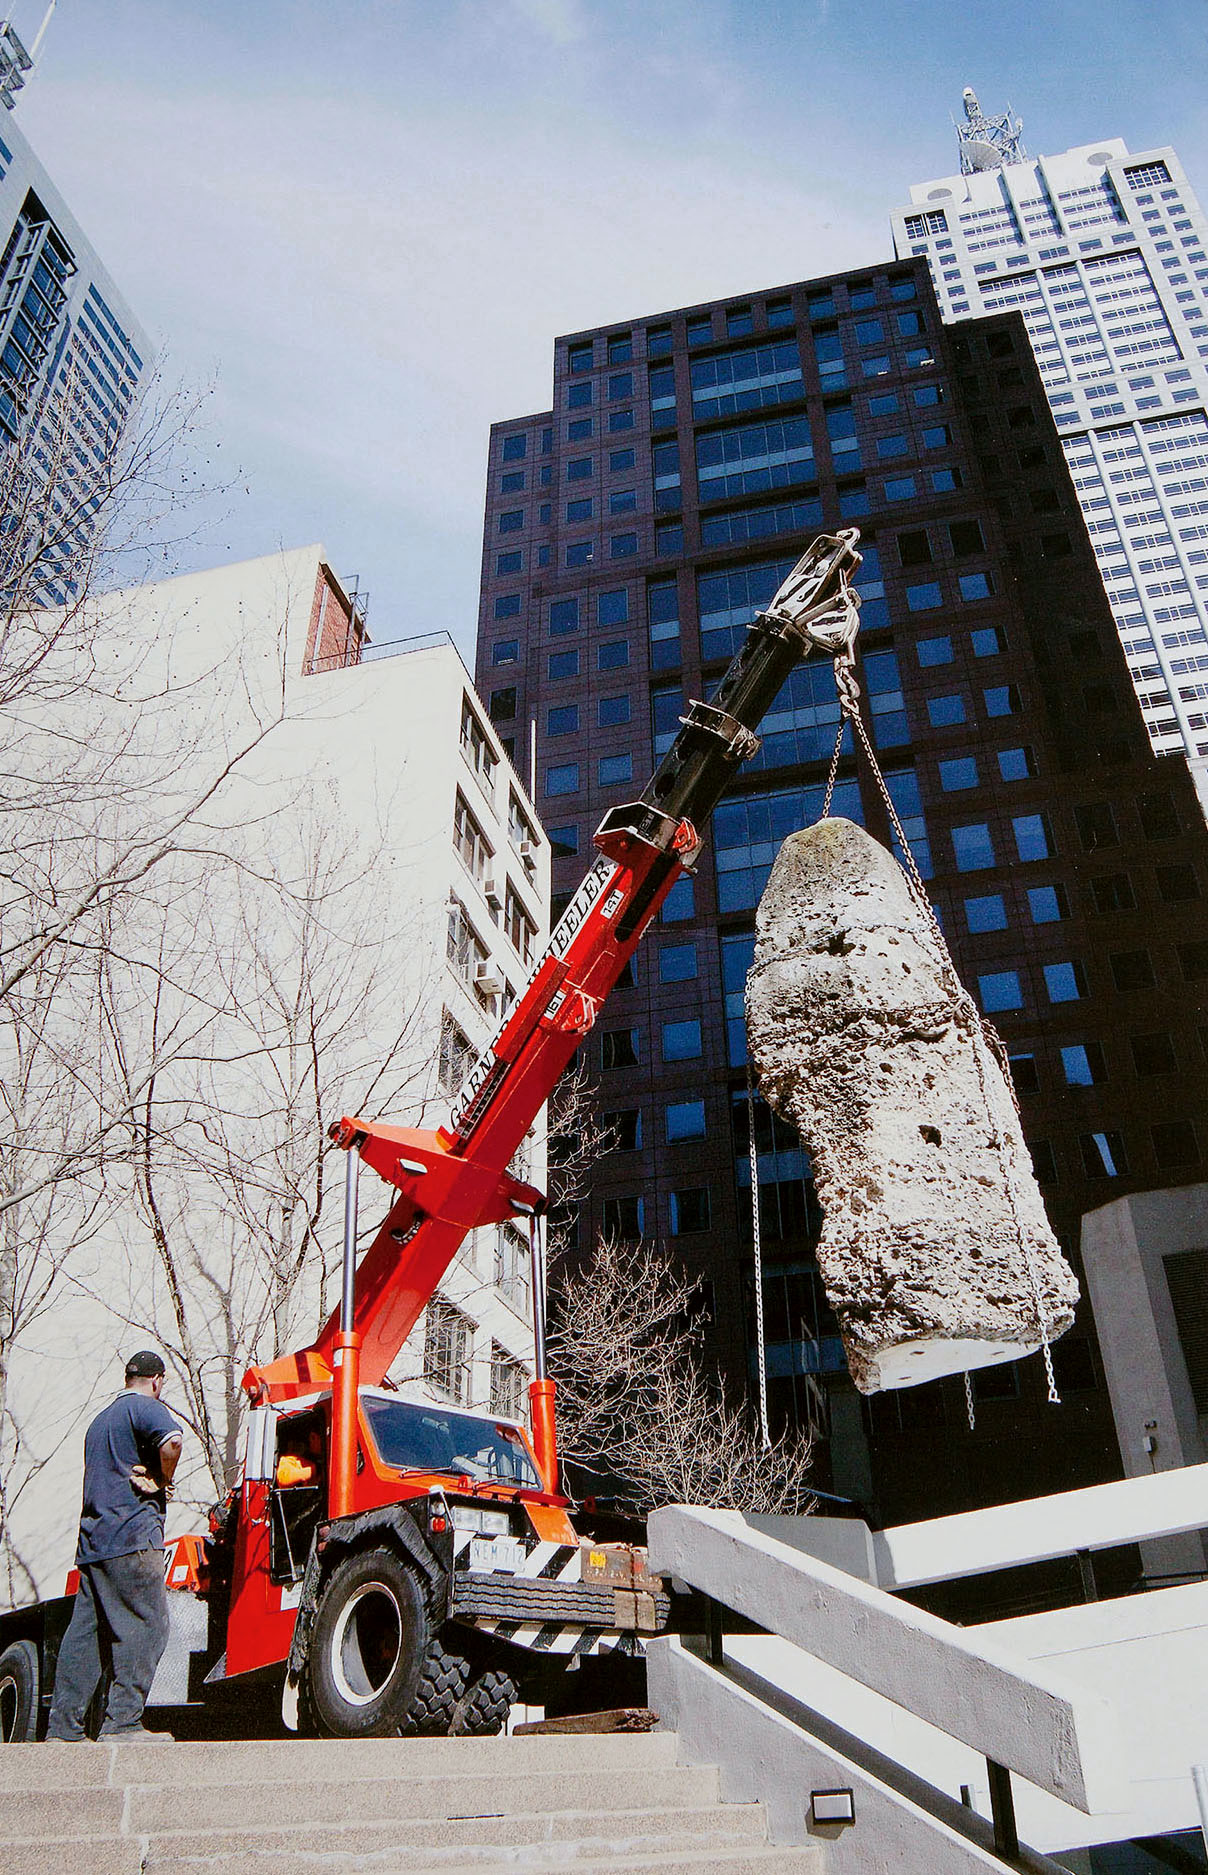 August 28, 2005. The Limestone Pinnacles at Nauru House in Melbourne, Victoria in the process of being relocated to Flinders. Photographer: Peter Glenane/Newspix. Copyright: News Corp Australia.